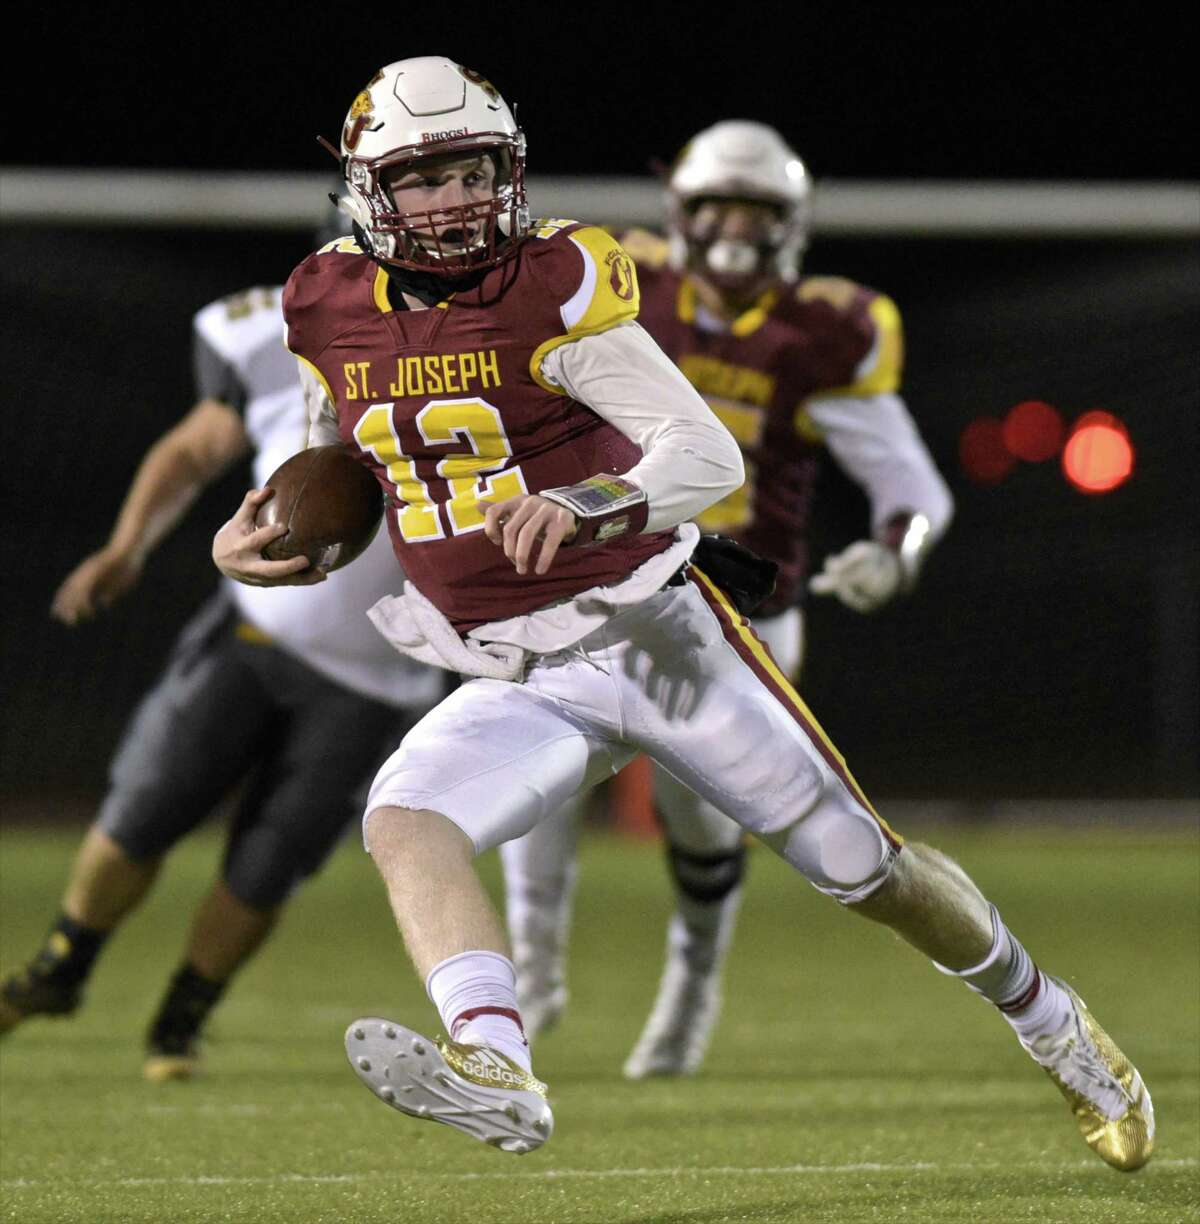 St Joe quarterback David Summers (12) is chased out of the backfield in the Class S football playoff game between O'Brien Tech and St.Joseph high schools on Tuesday night, November 28, 2017, at Trumbull High School, in Trumbull, Conn.